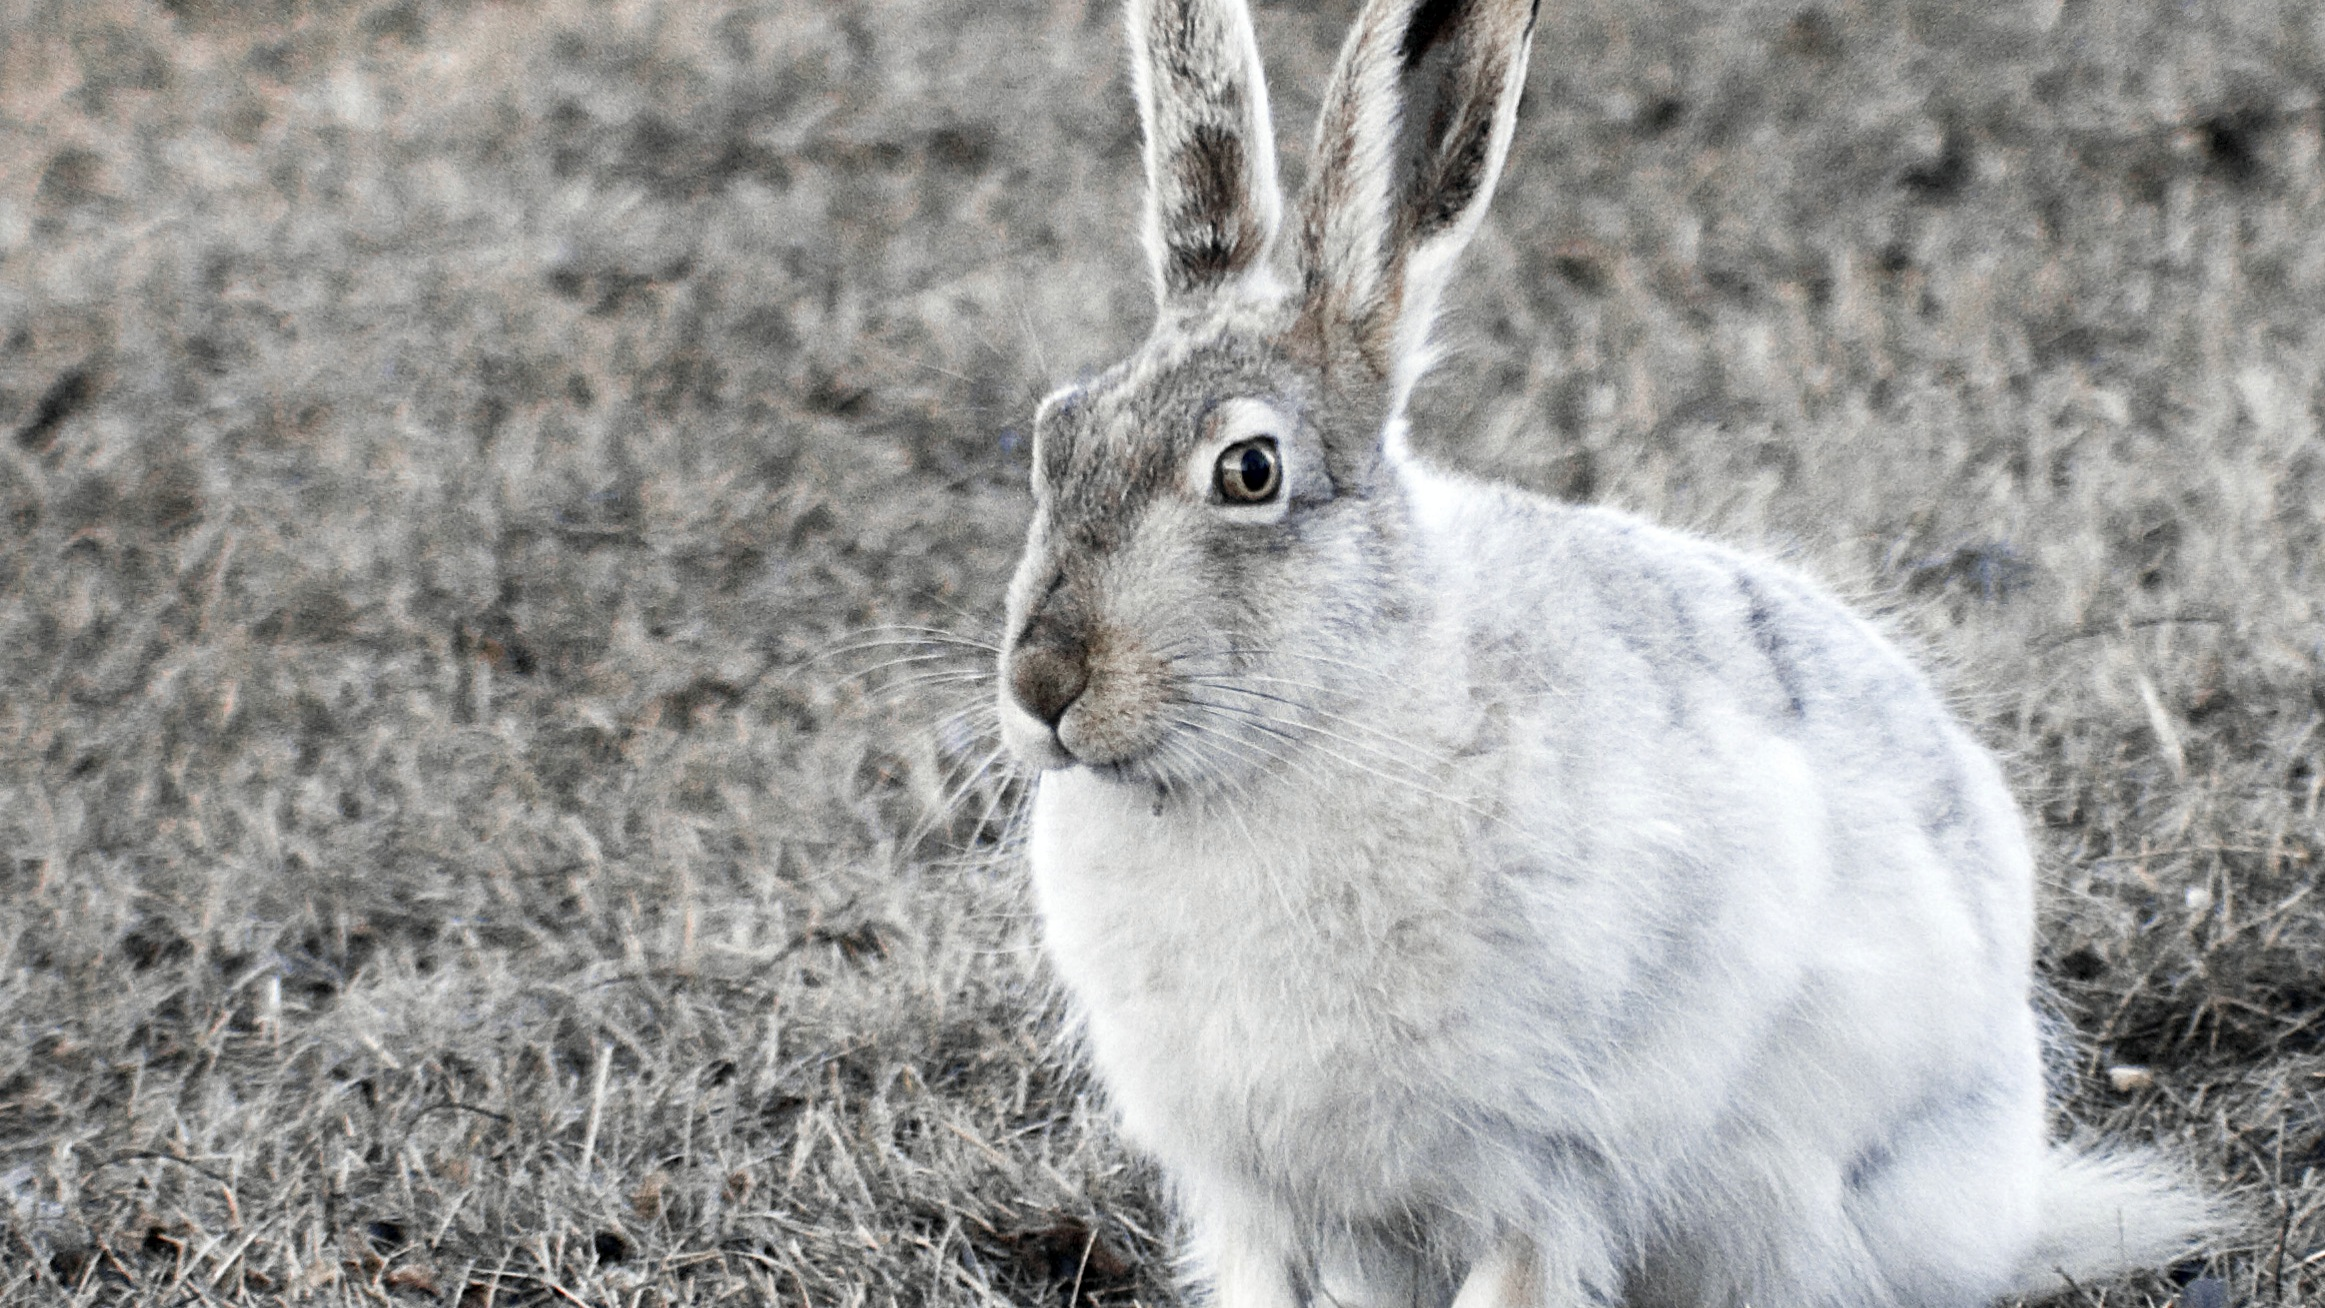 White-Tailed Jackrabbit. By Adam Lowe (Own work) [CC-BY-SA-3.0 (